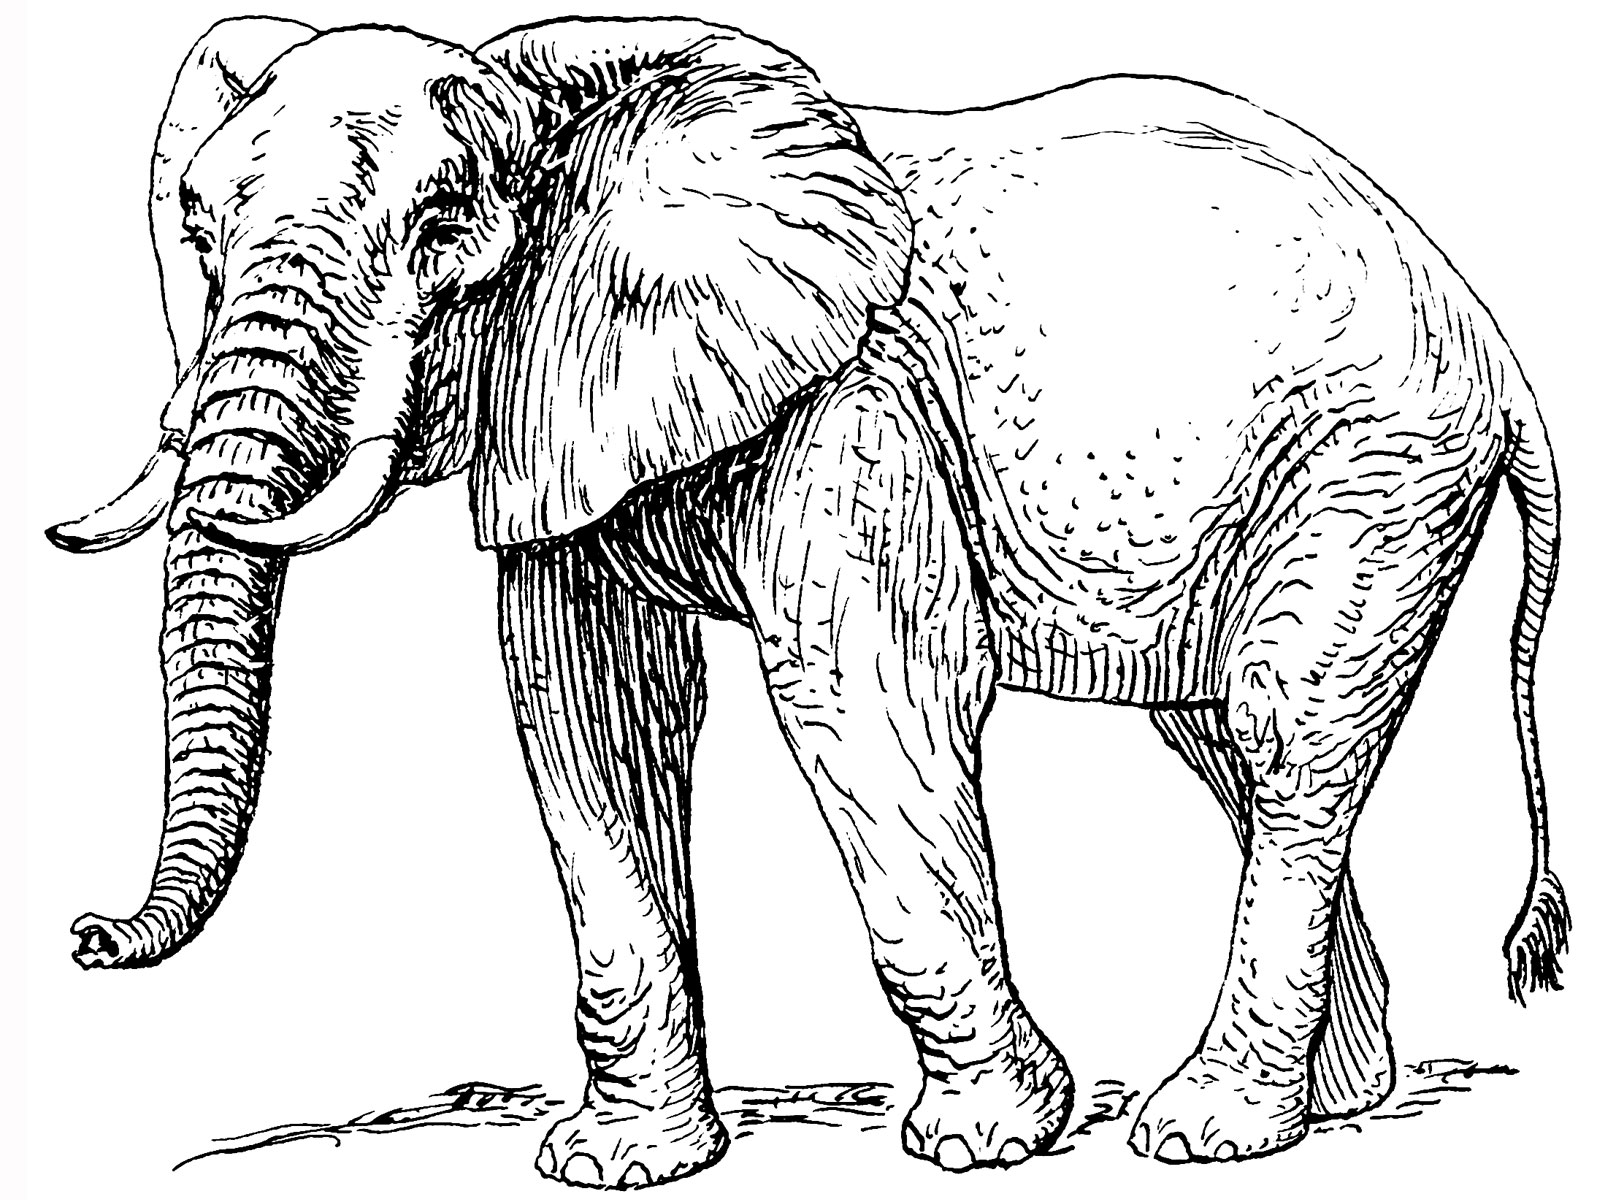 elephant outline coloring page cute little elephant bathing elephant coloring page page coloring outline elephant